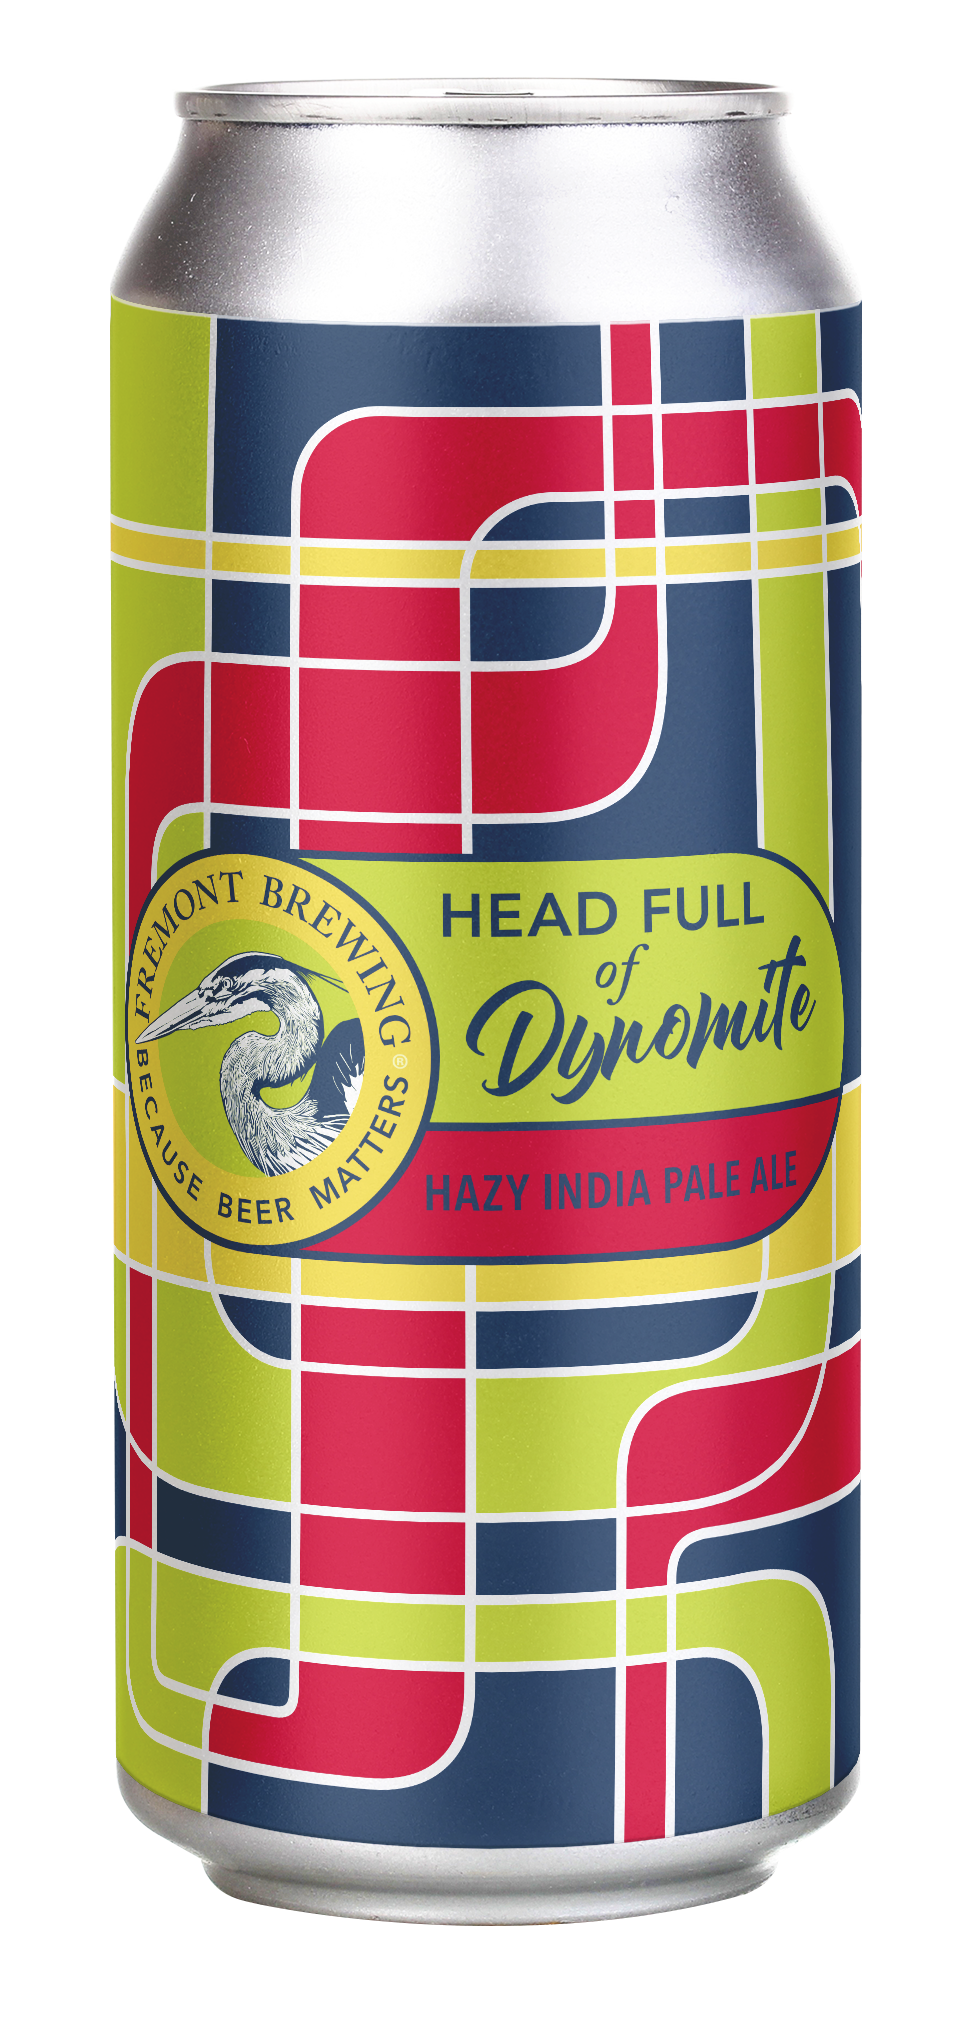 Head Full of Dynomite v.9